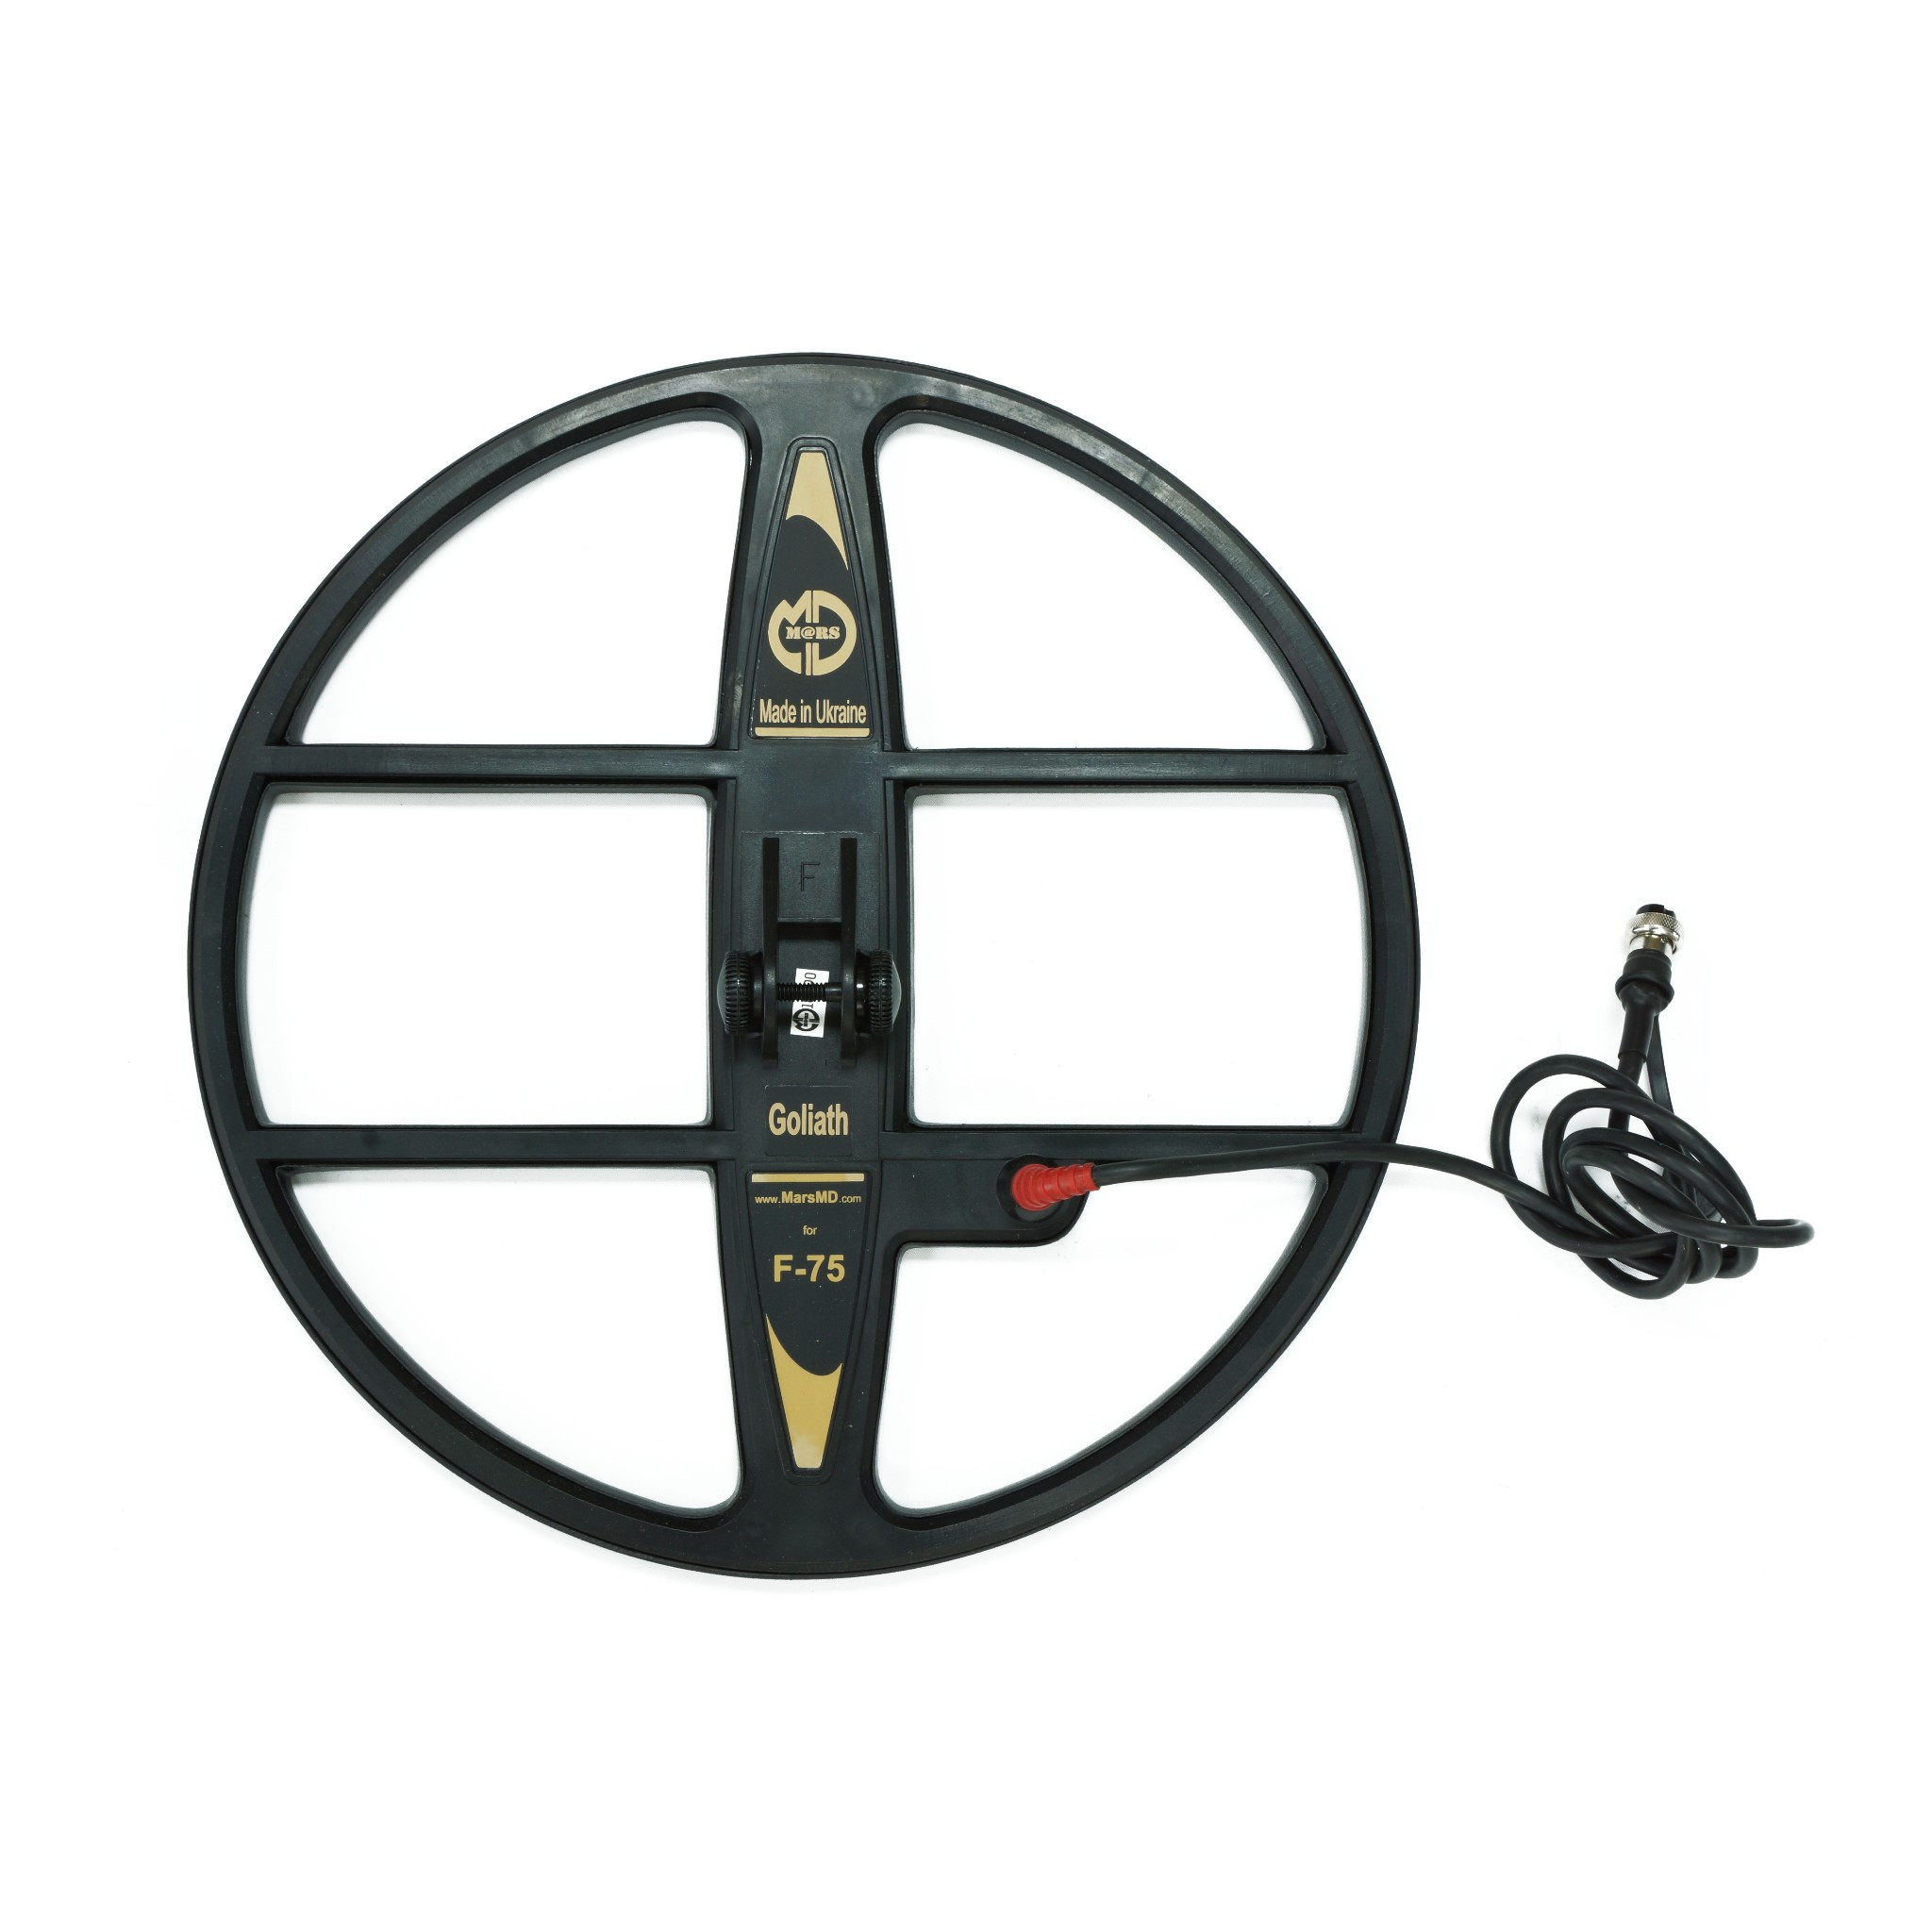 """Mars Goliath 15"""" DD Waterproof Search Coil for Fisher F75 Metal Detector - Detector Supply Company"""